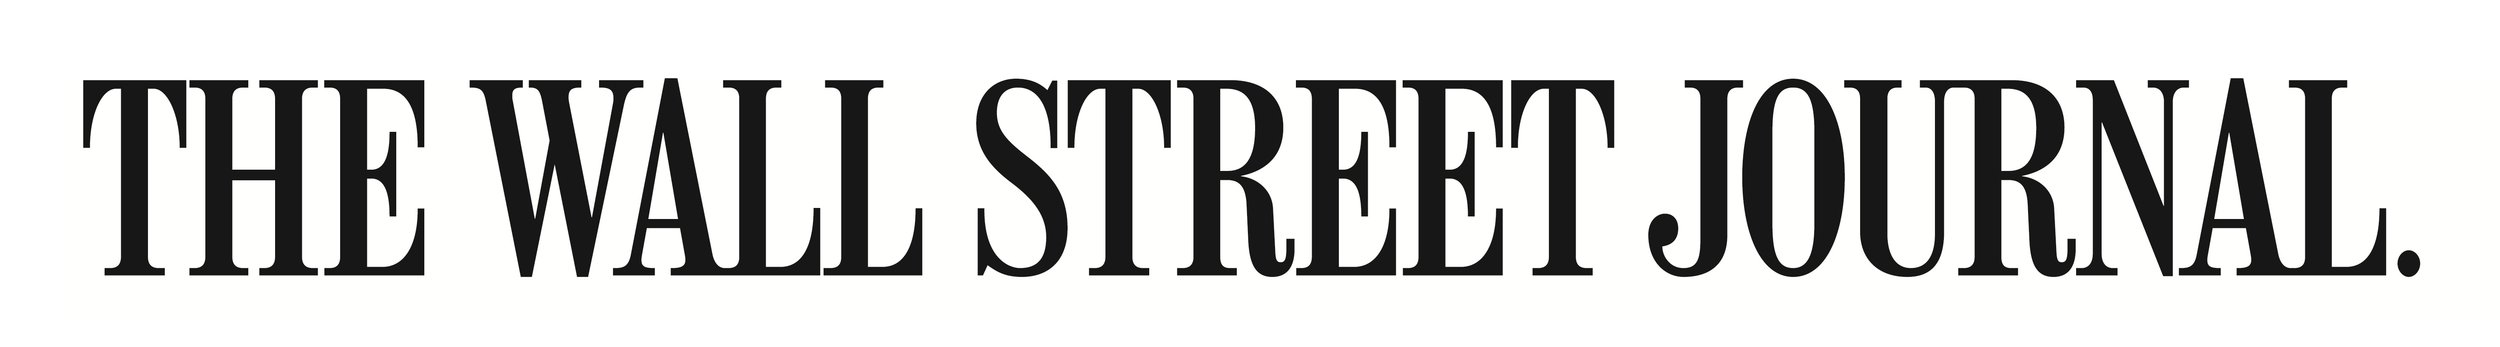 wall-street-journal-logo-white-png-the-wall-street-journal.jpg